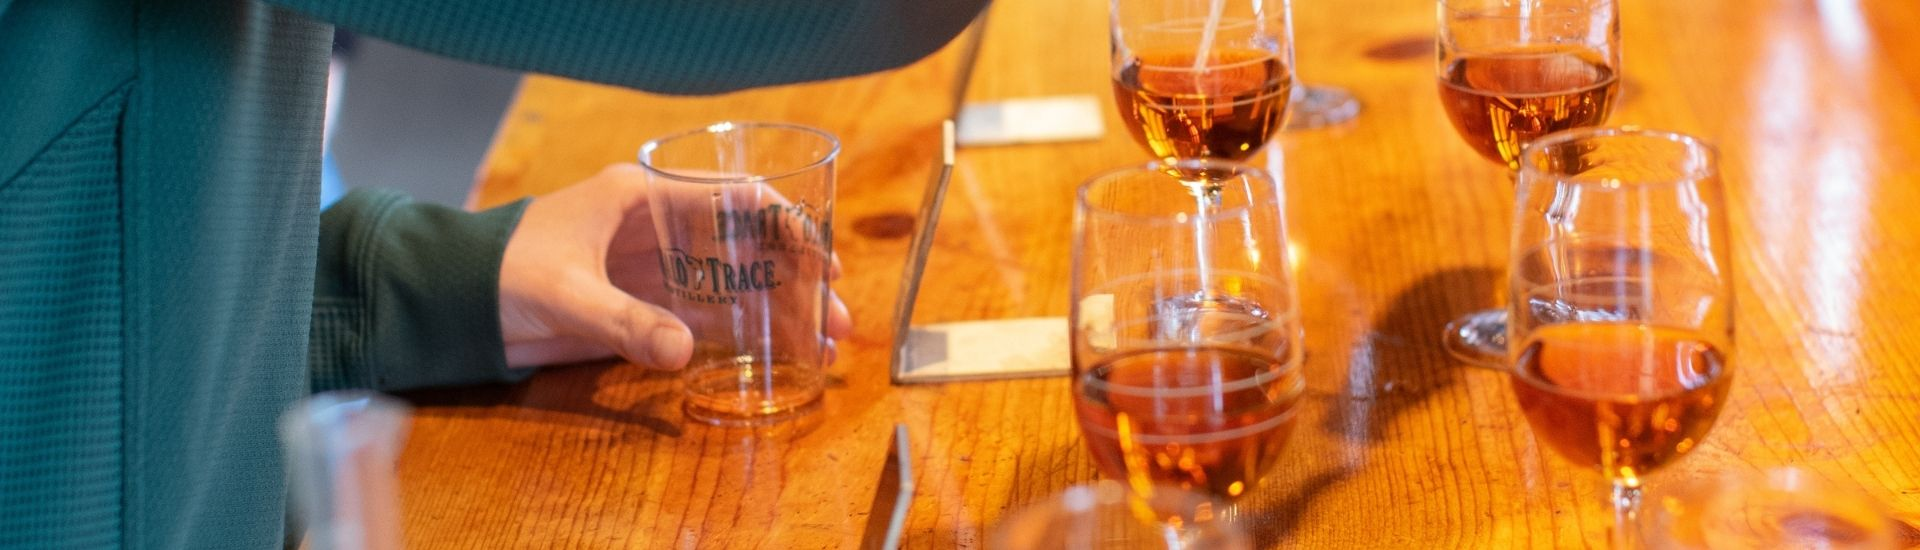 Filling glasses with buffalo trace bourbon